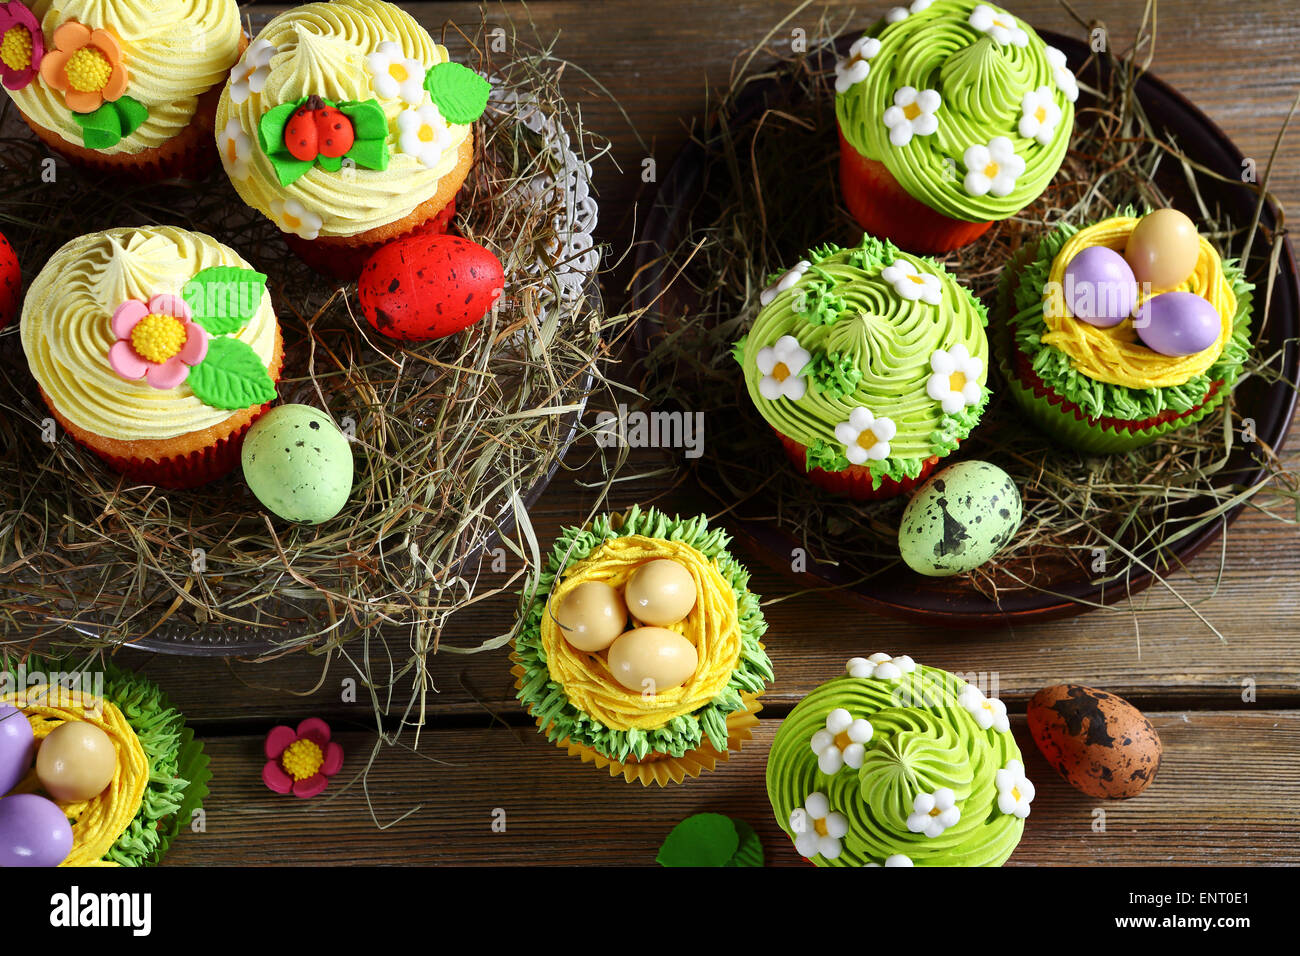 Easter cupcakes on hay, food closeup - Stock Image